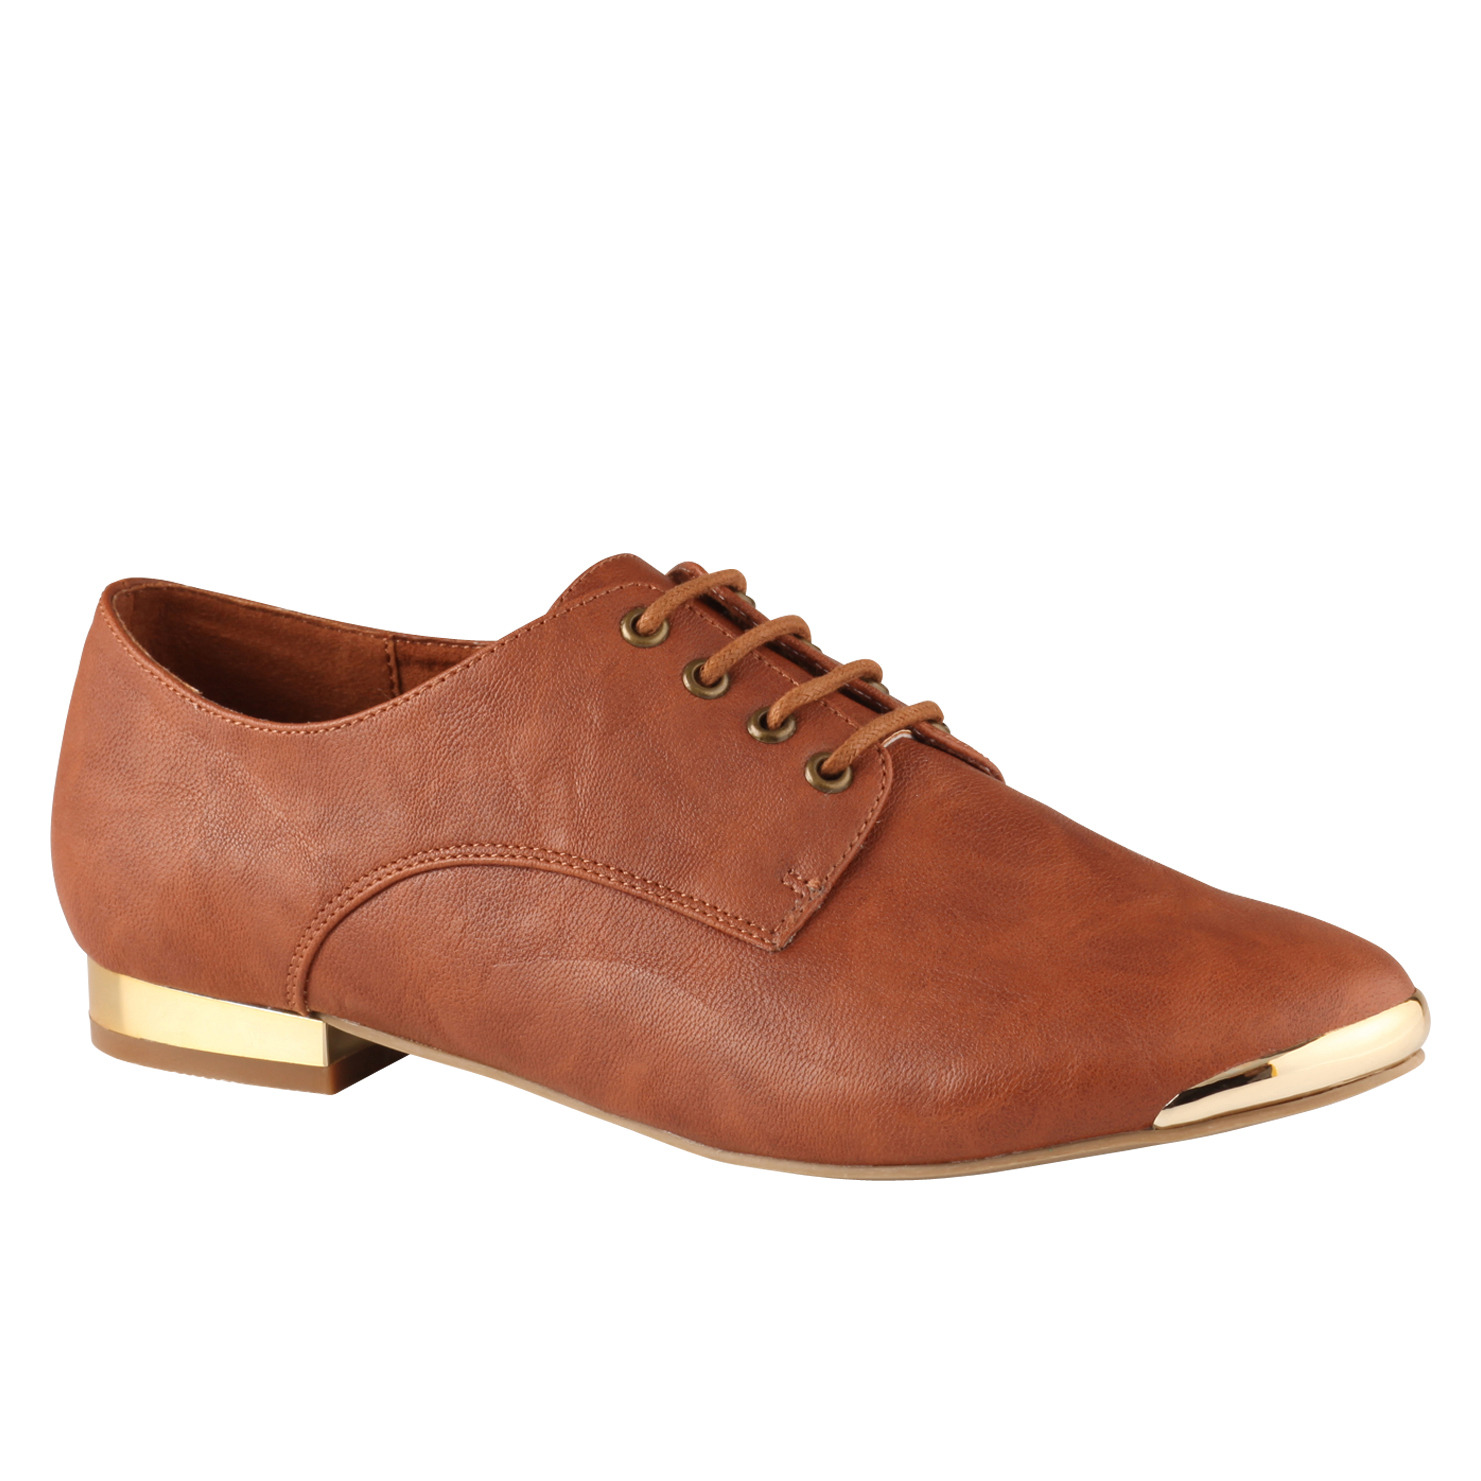 Women's Oxford Shoes from Call It Spring